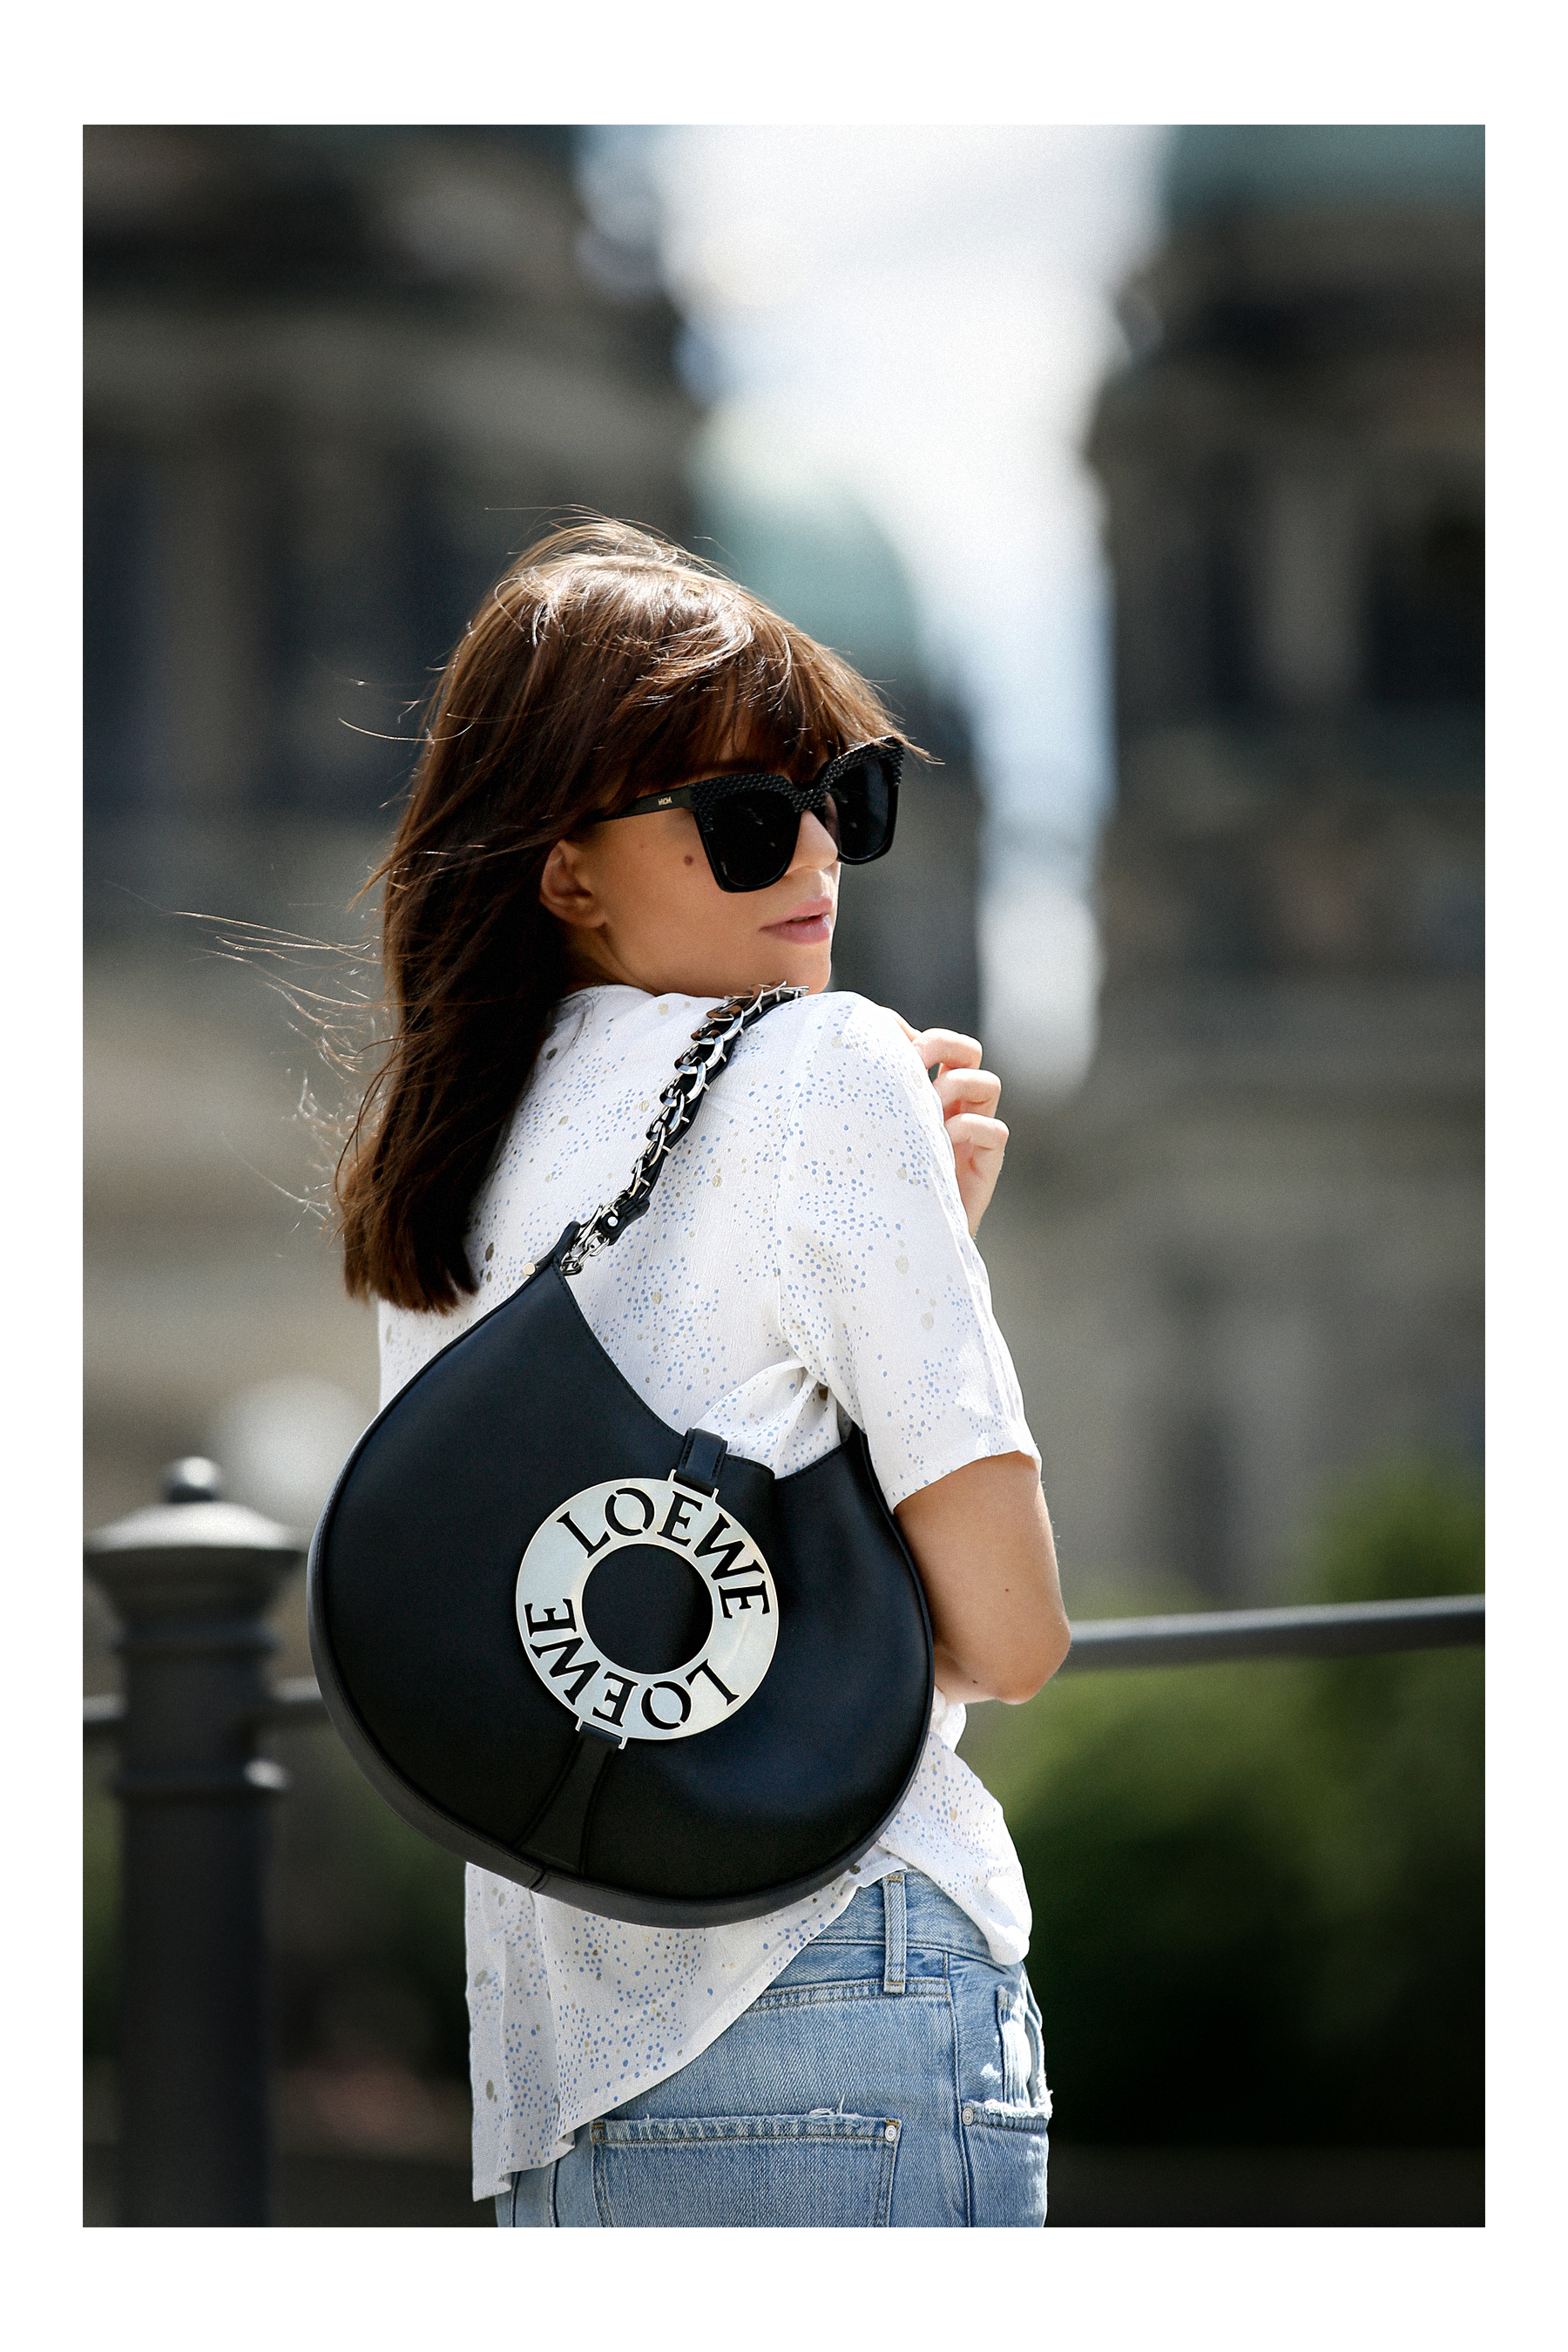 outfit berlin dom museumsinsel denim white blouse parisienne mbym jeanne damas style bangs brunette chic look outfitblogger breuninger loewe joyce bag mcm sunglasses summer german fashion blogger cats & dogs modeblog ricarda schernus max bechmann foto 3